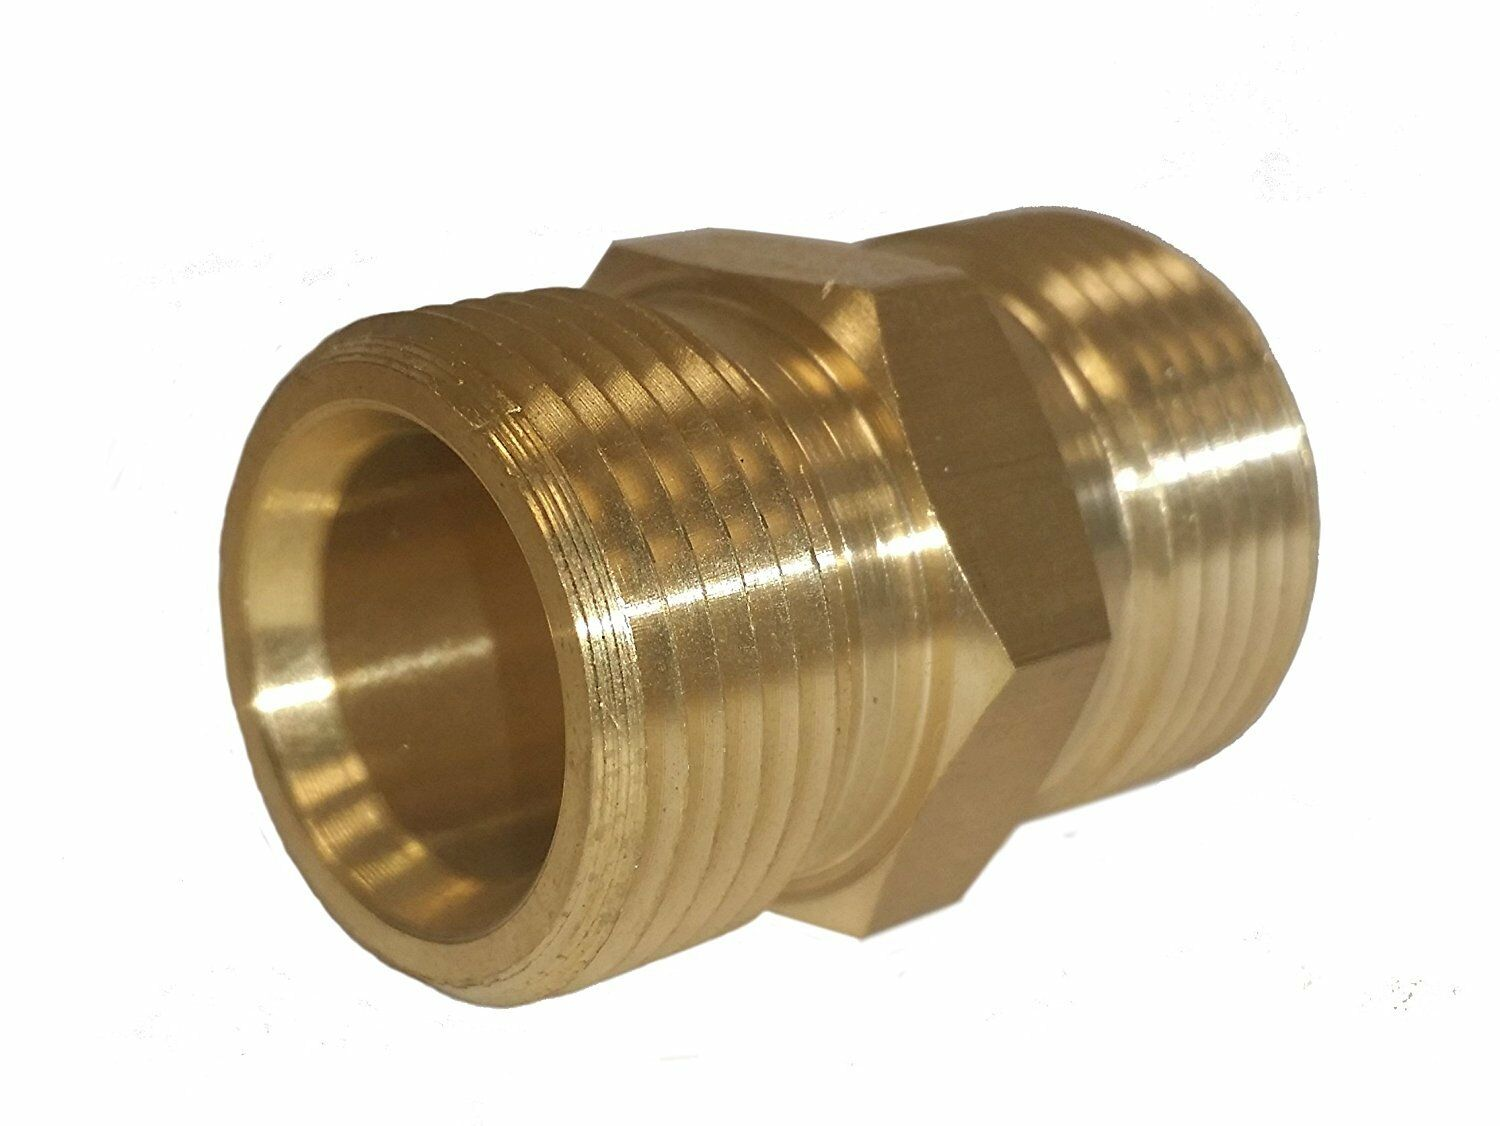 Pressure Power Washer M22 X M22 14 Mm Metric Hose Joiner Coupler ...